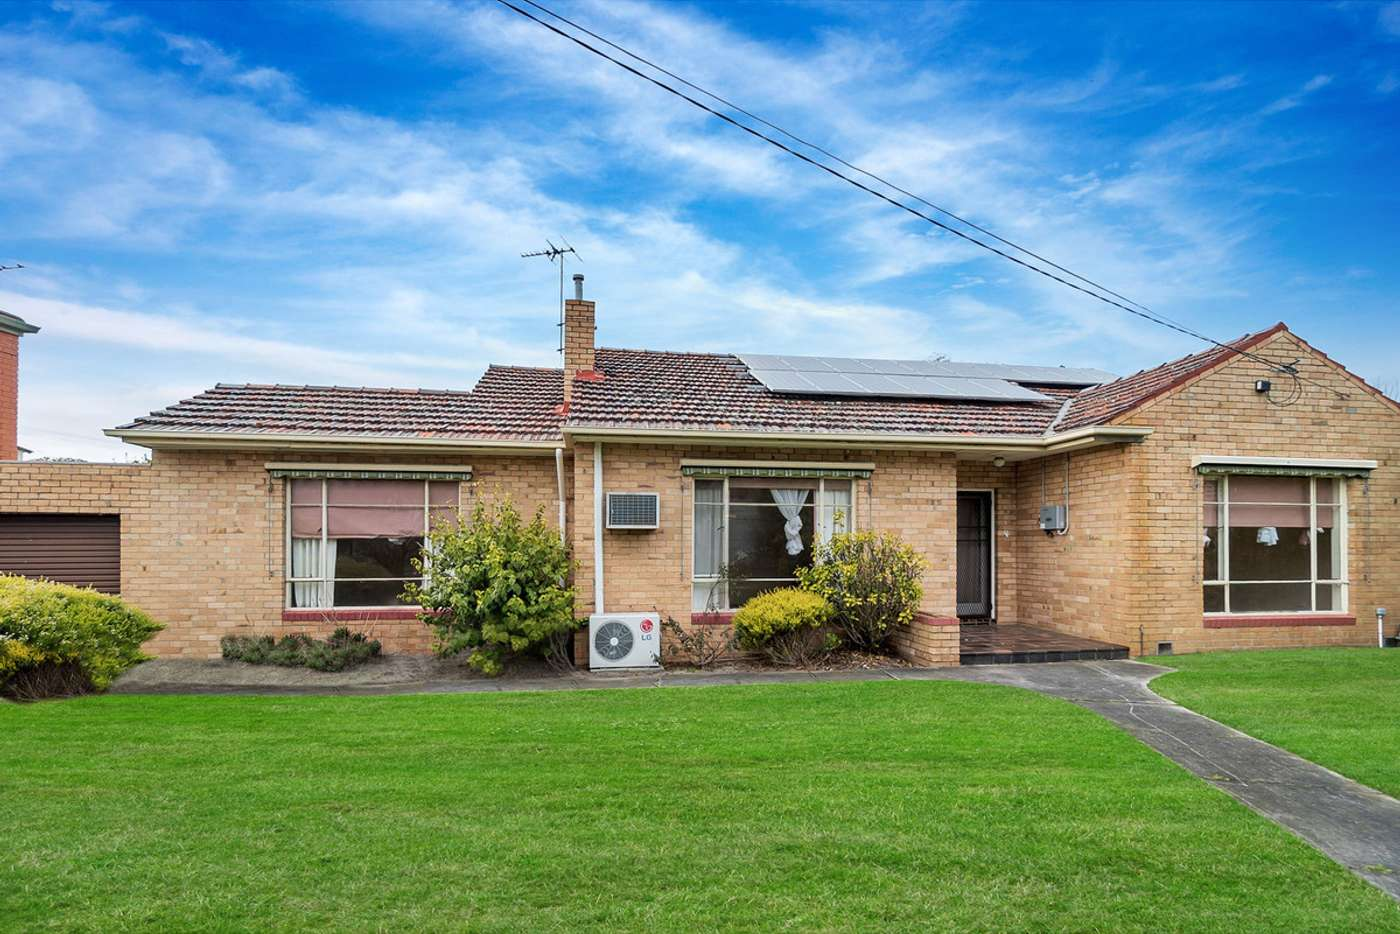 Main view of Homely house listing, 8 Plym Street, Bentleigh VIC 3204